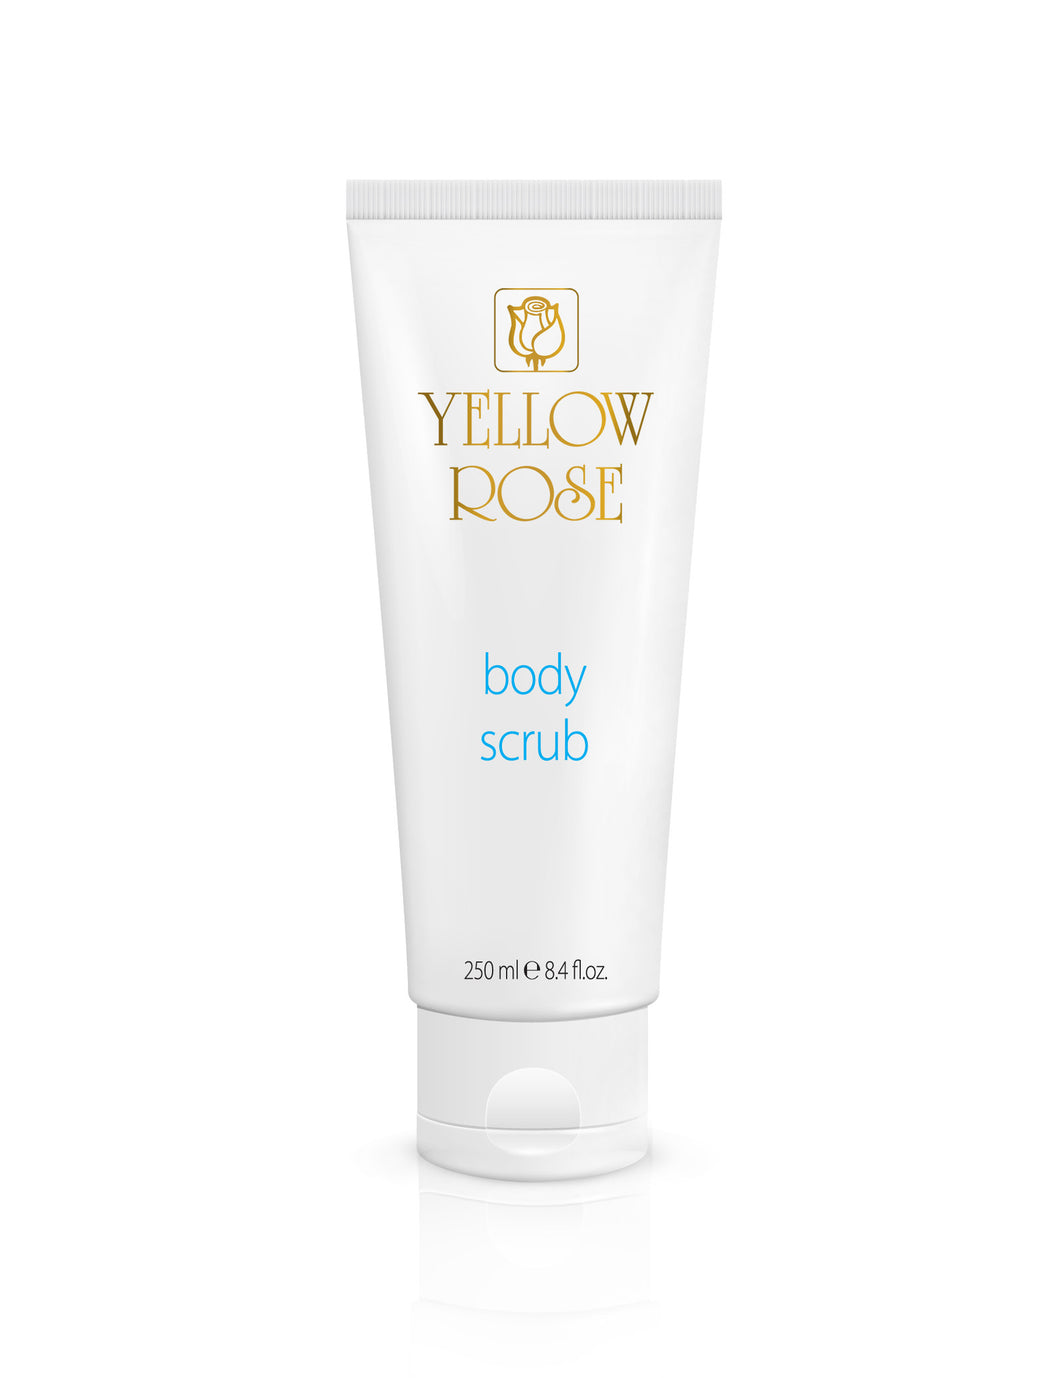 BODY SCRUB - 250ml